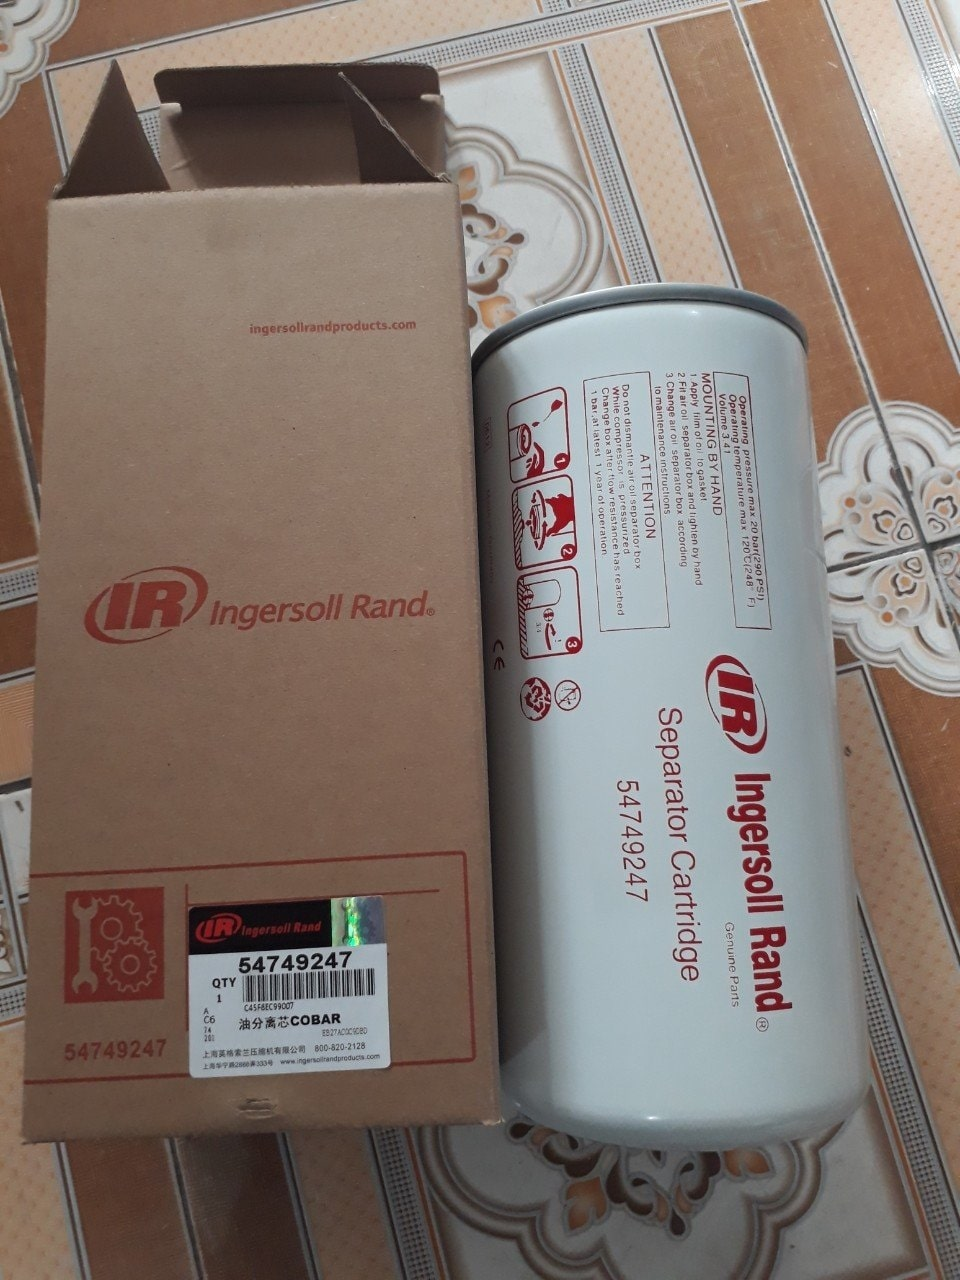 Lọc tách Ingersollrand 54749274